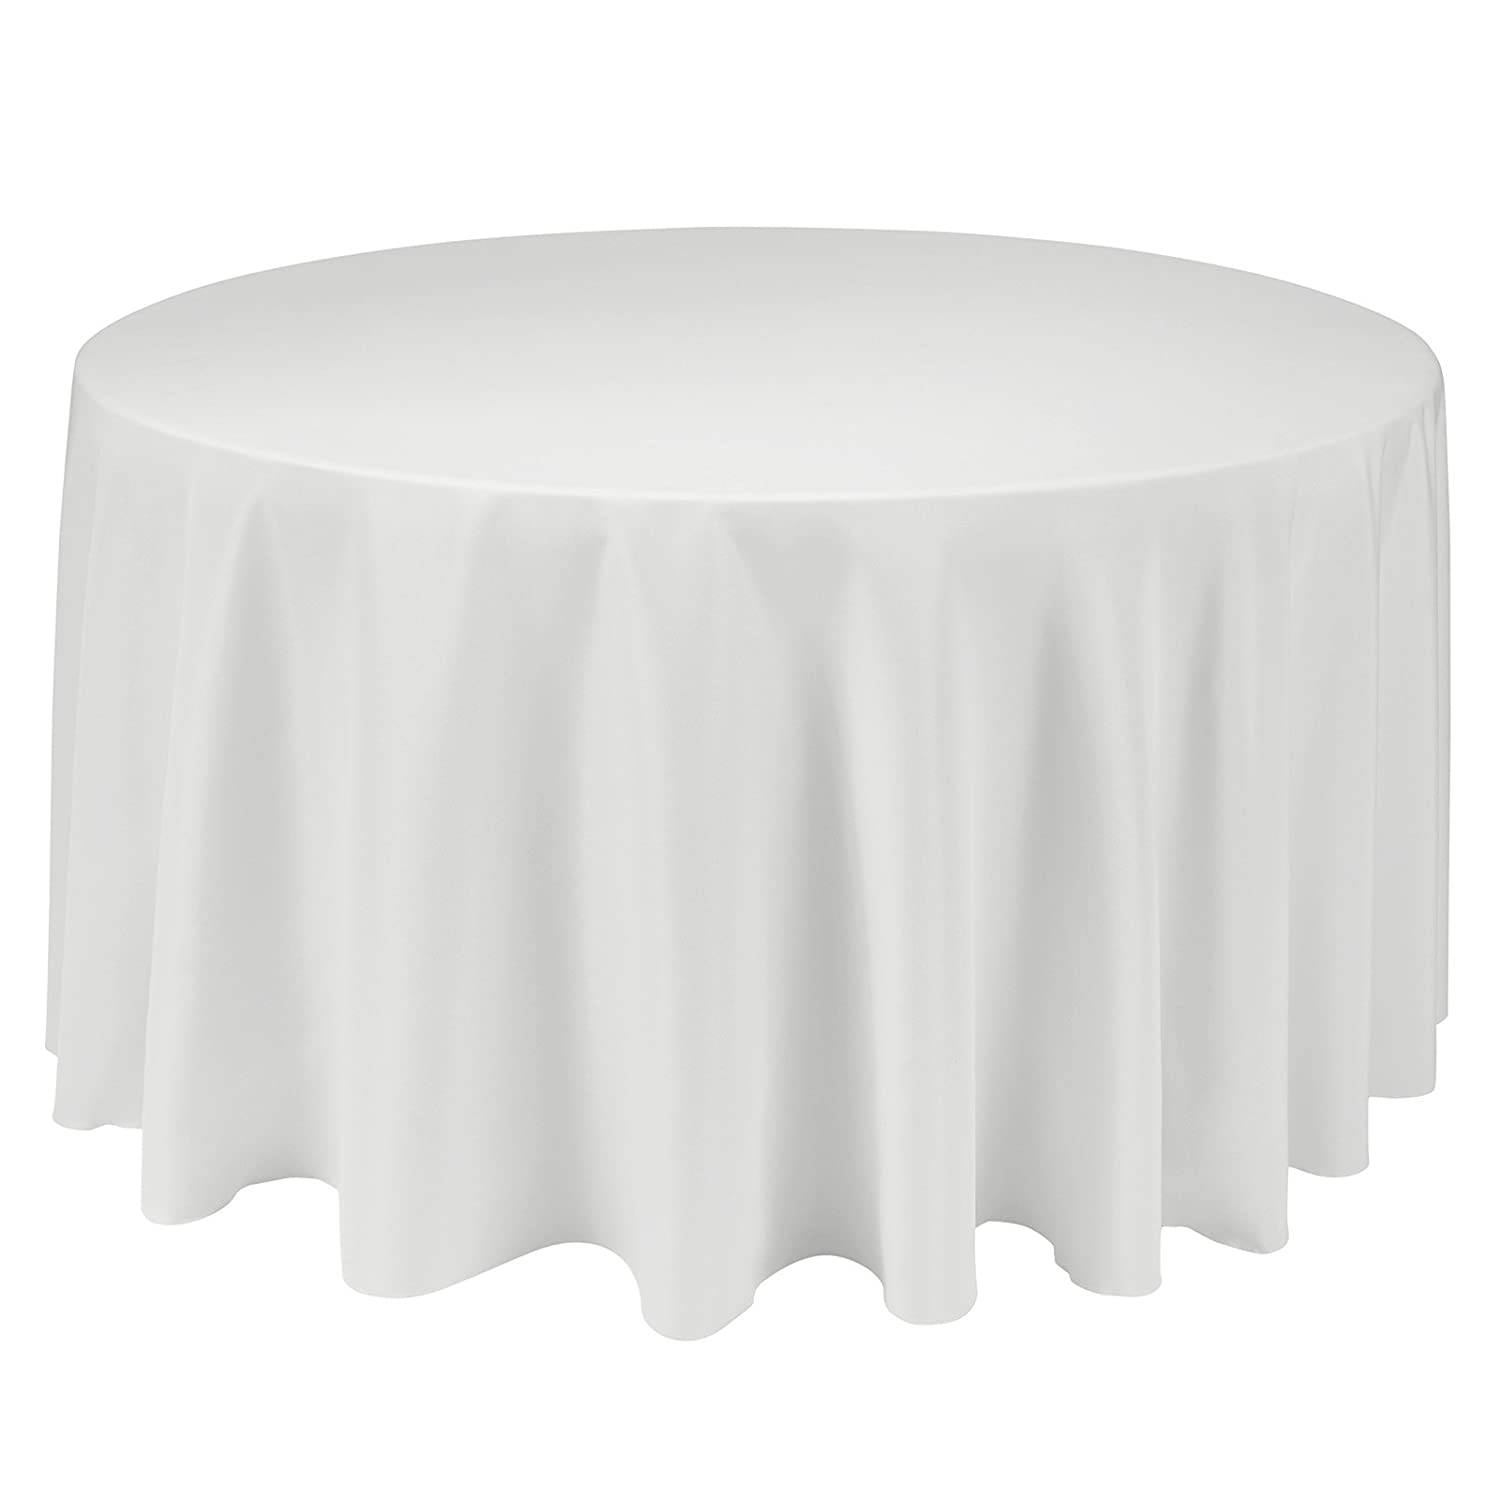 Super Remedios Round Tablecloth Solid Color Polyester Table Cloth For Bridal Shower Wedding Table Wrinkle Free Dinner Tablecloth For Restaurant Party Download Free Architecture Designs Scobabritishbridgeorg